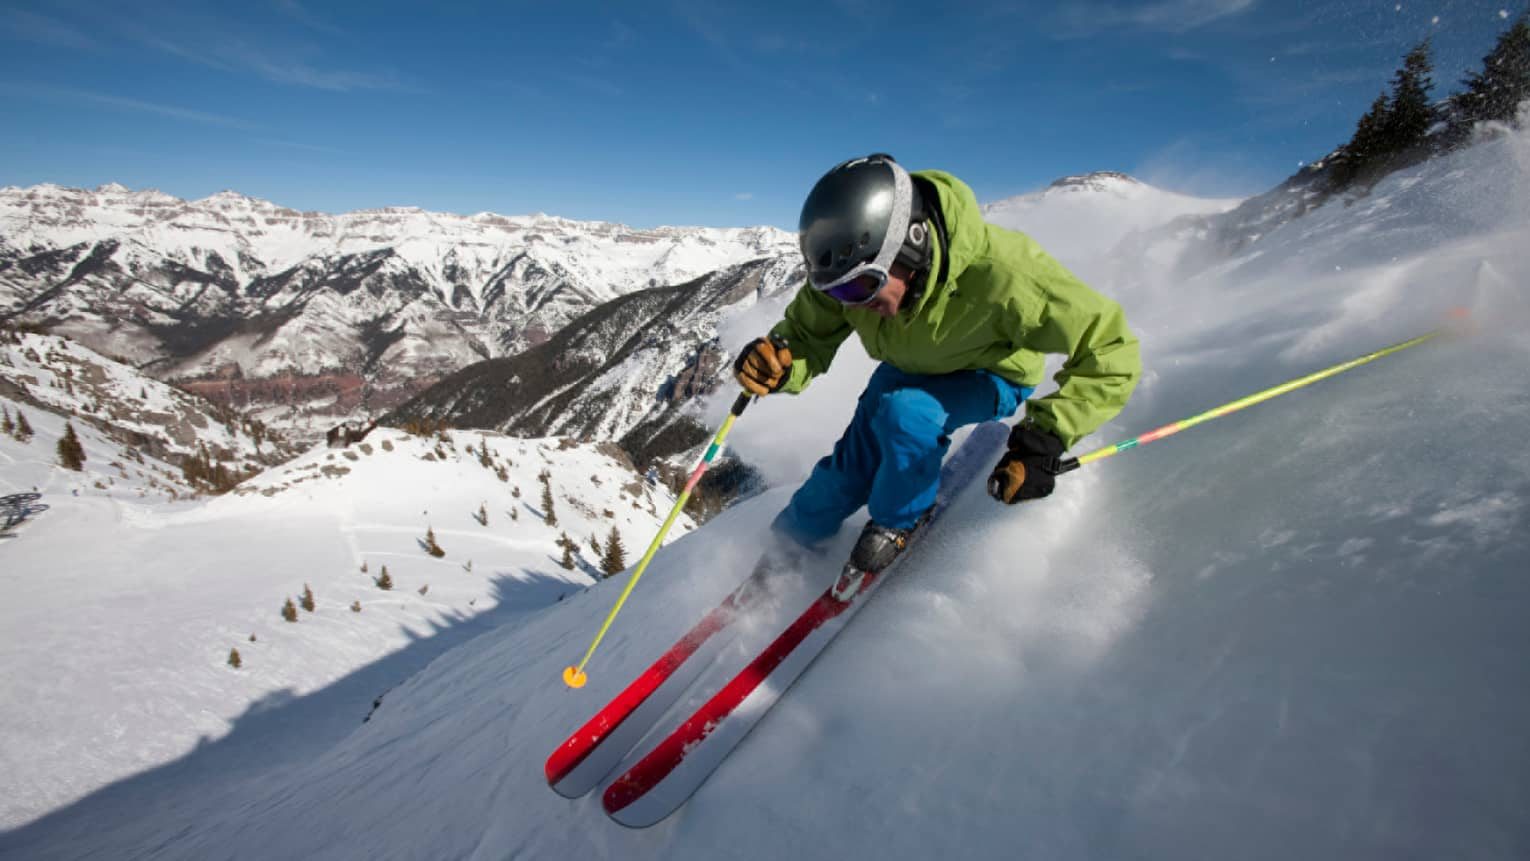 Man in colourful ski jacket, helmet, holds poles, skis down Rocky Mountain